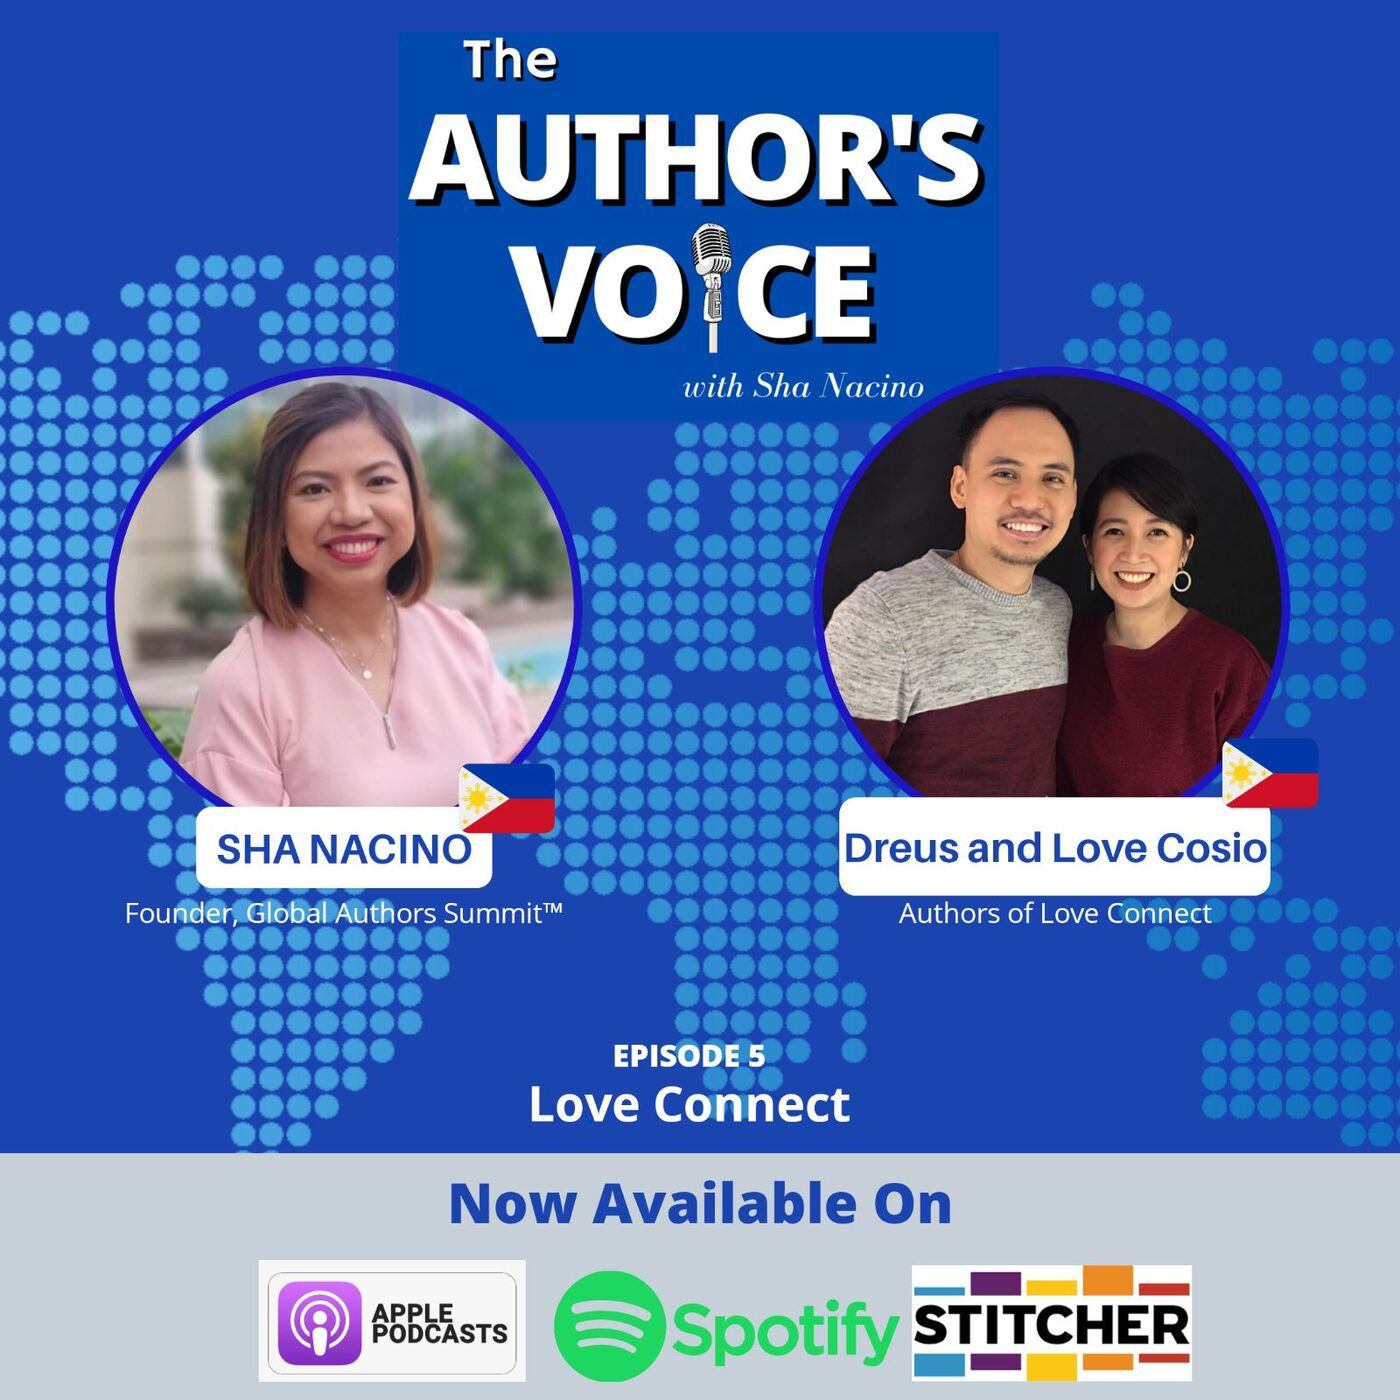 TAV 005 : Love Connect with Dreus and Love Cosio